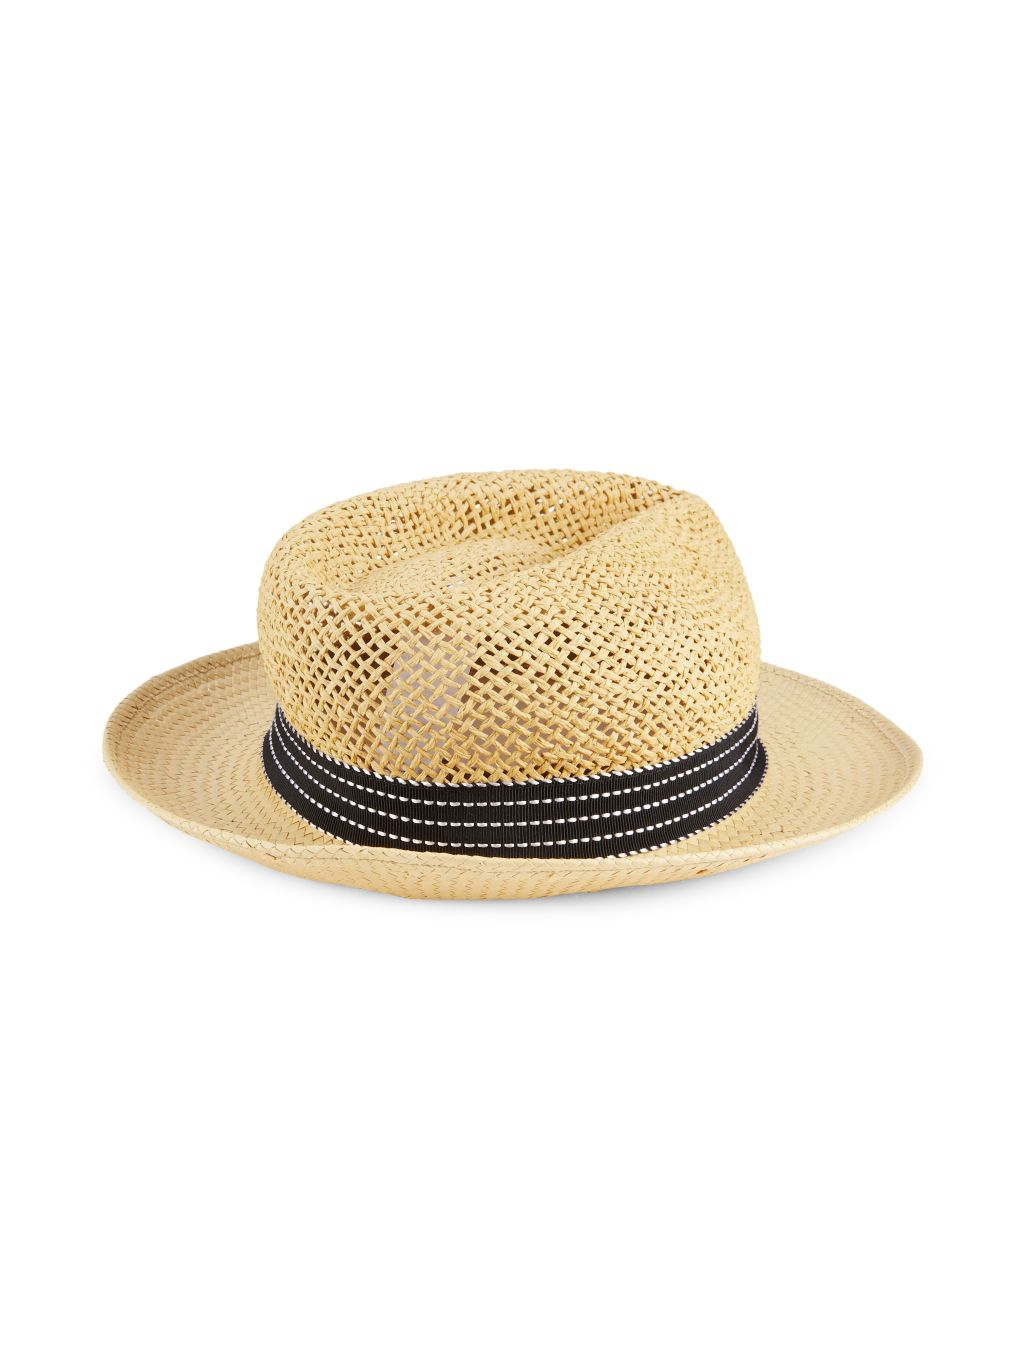 Saks Fifth Avenue Made in Italy Straw Fedora